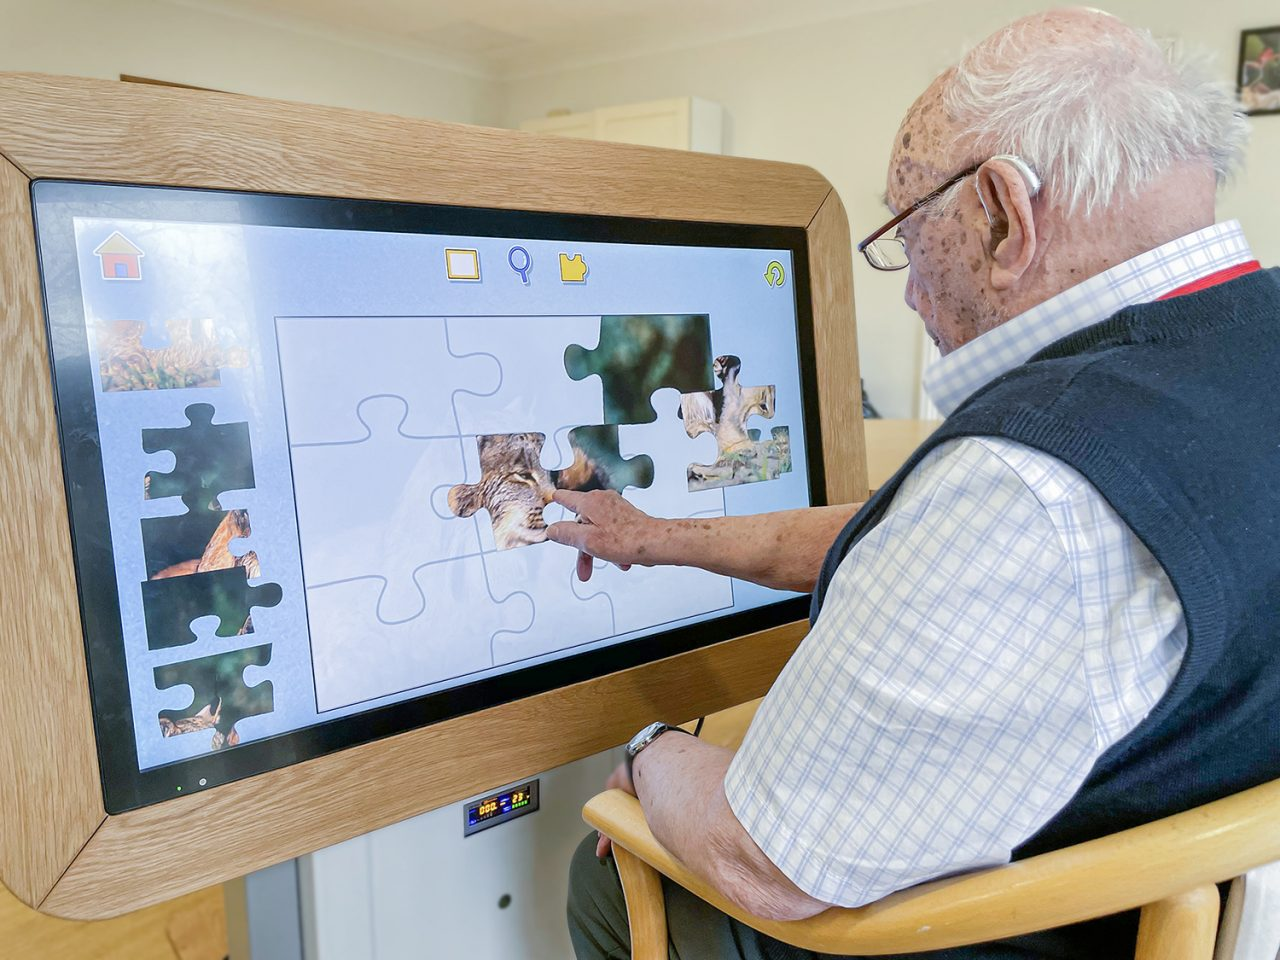 Charity engages residents with technology to stimulate, motivate and support wellbeing